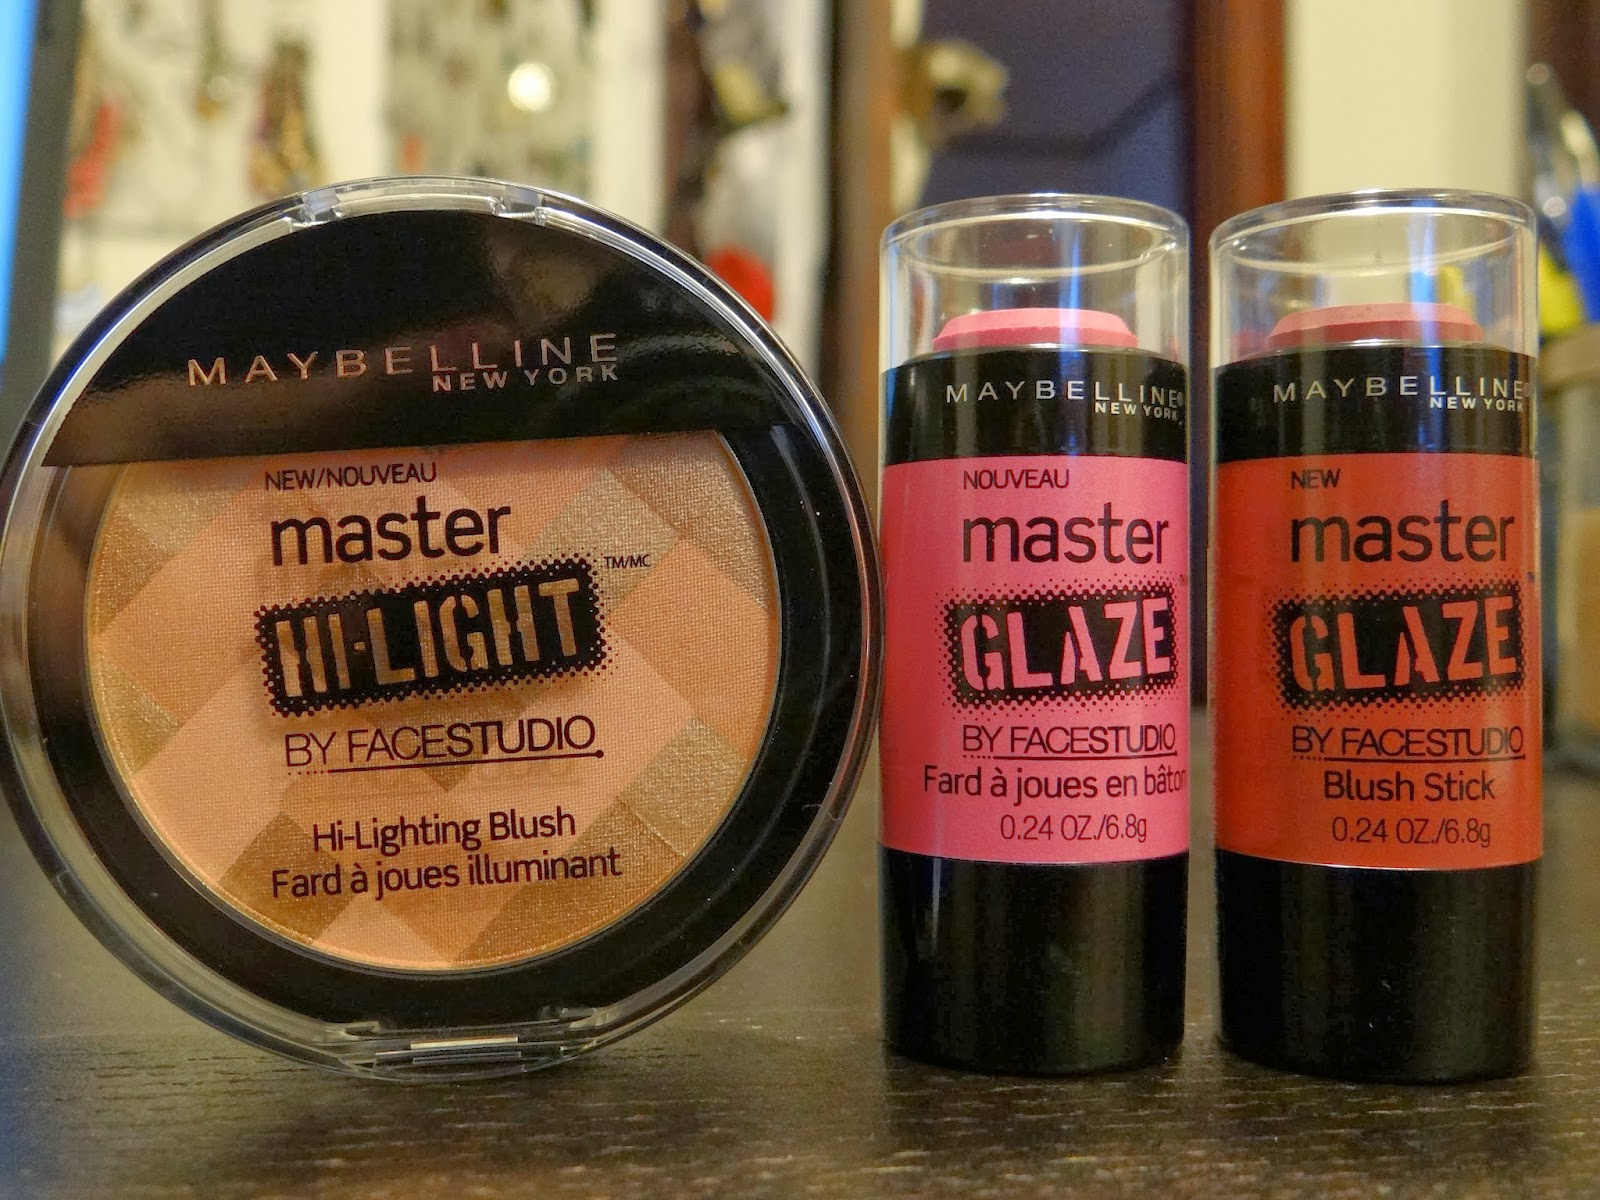 Maybelline Master Collection